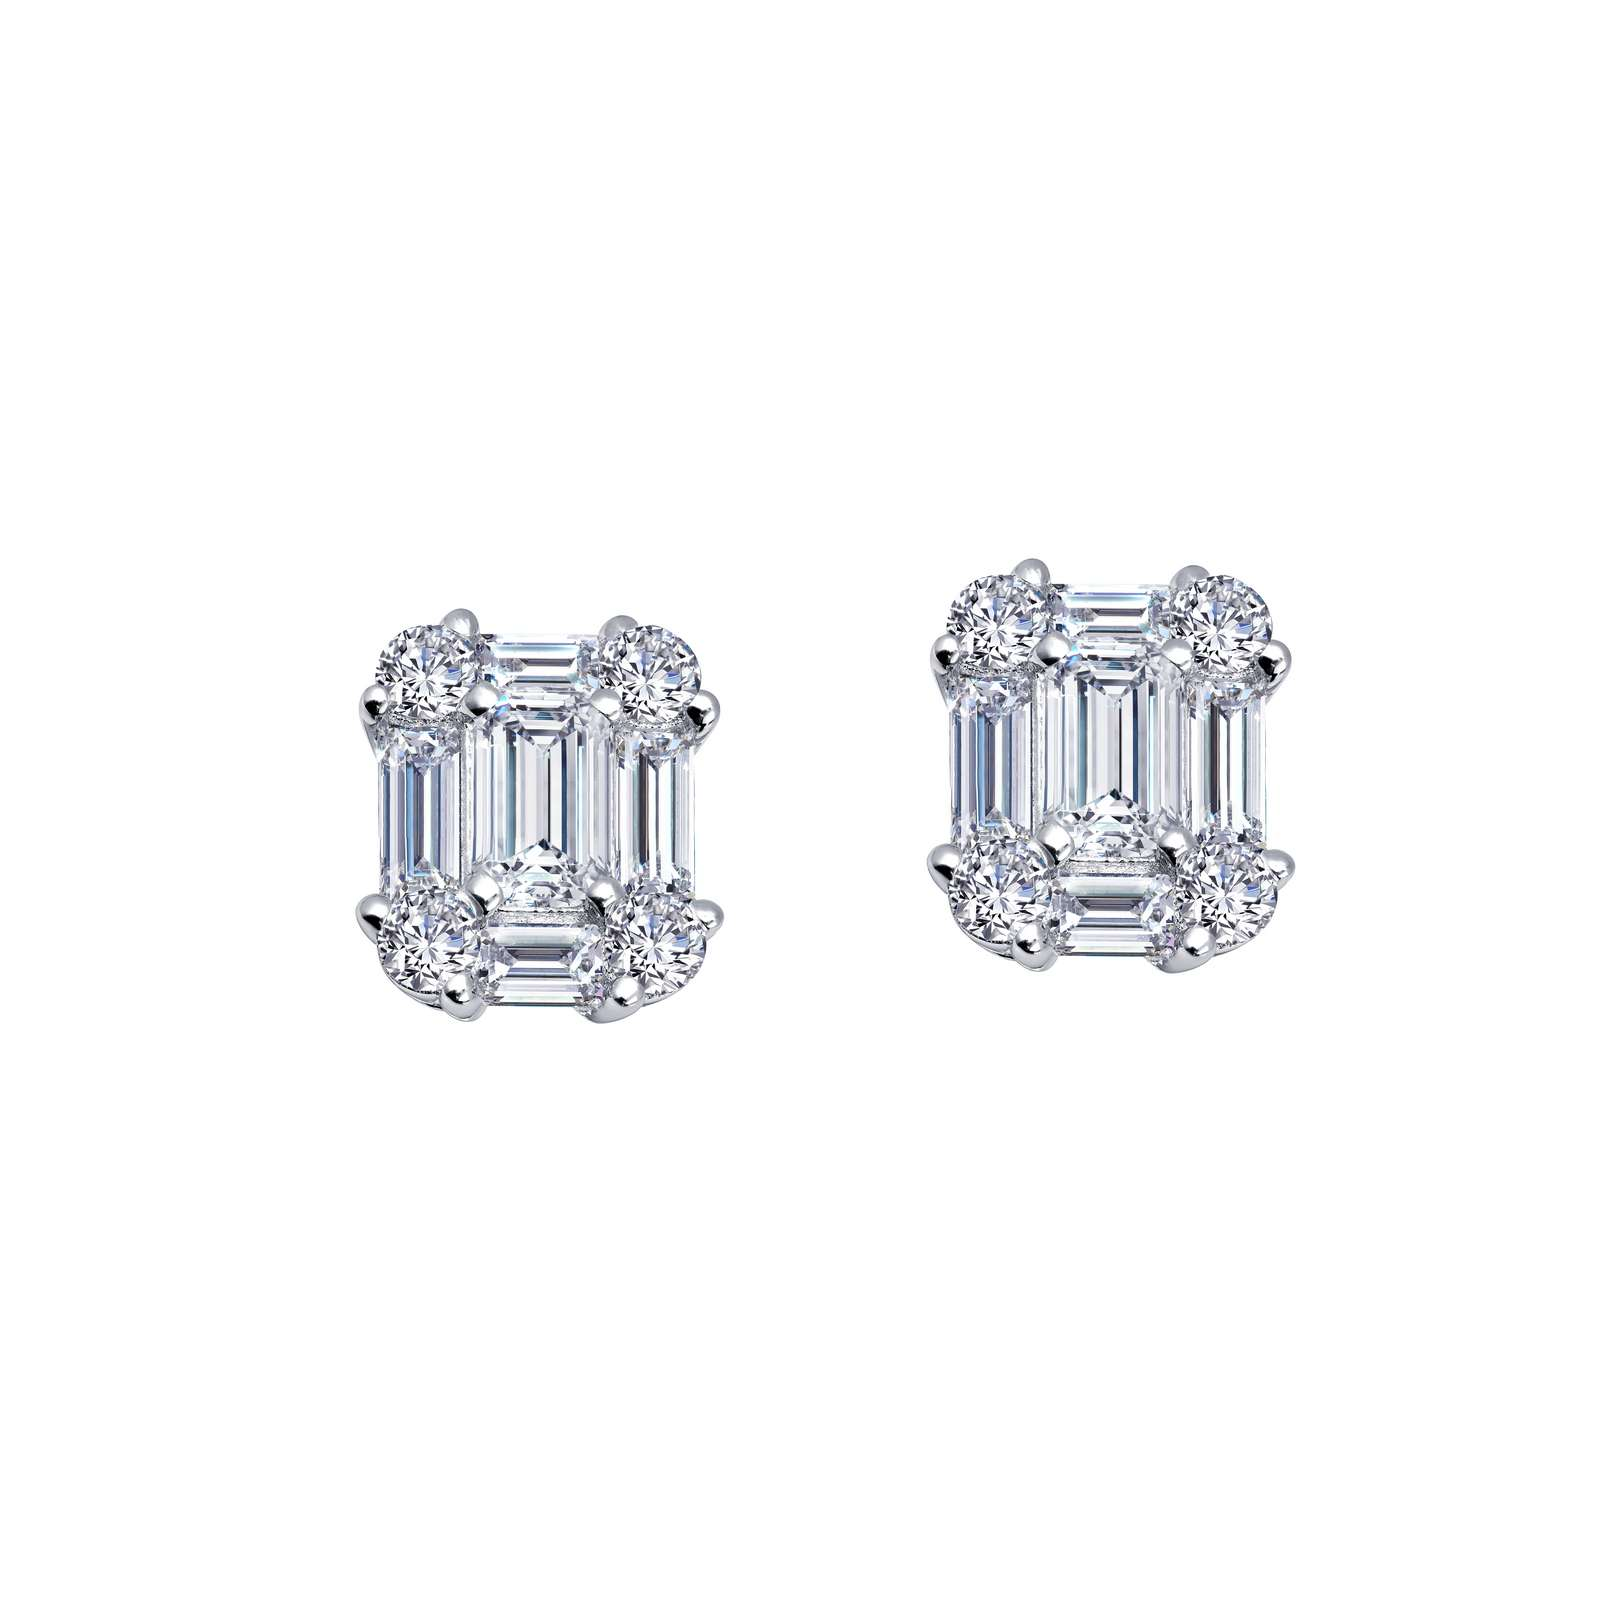 Classic Simulated Diamond Platinum Bonded Earrings by Lafonn Jewelry